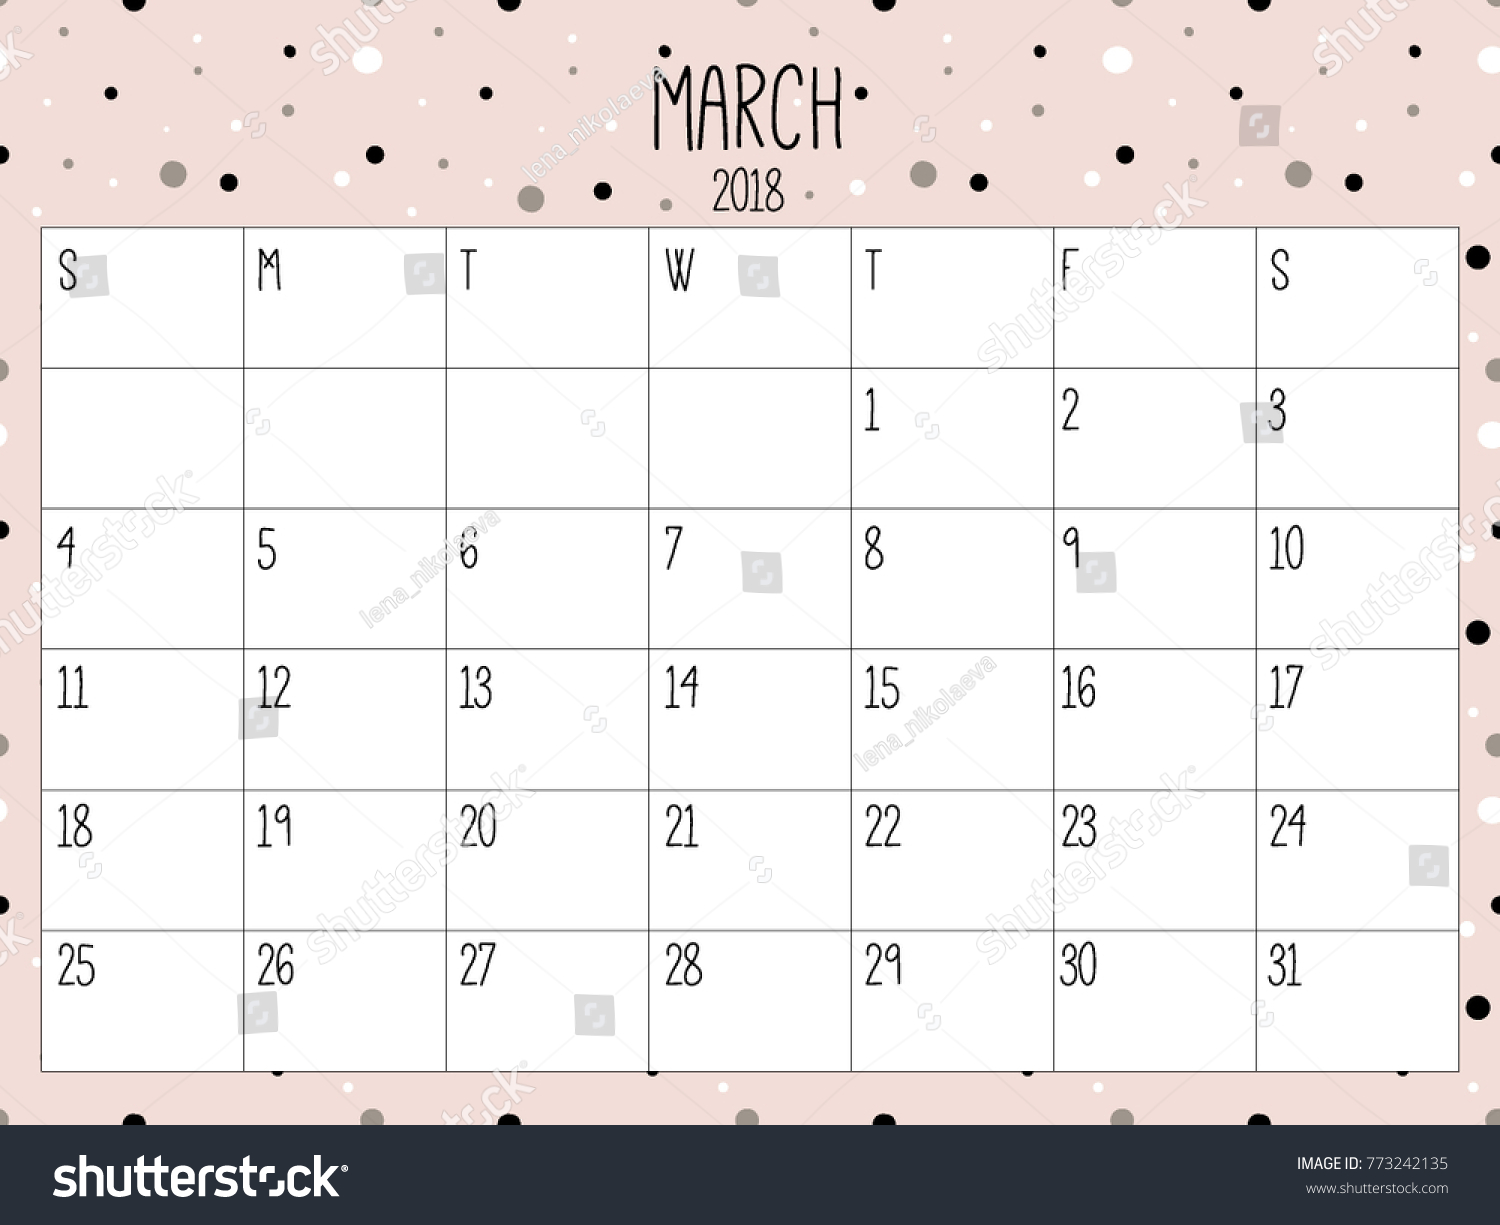 march planner modern creative calendar 2018 abstract monthly calendar template with doodle hand drawn